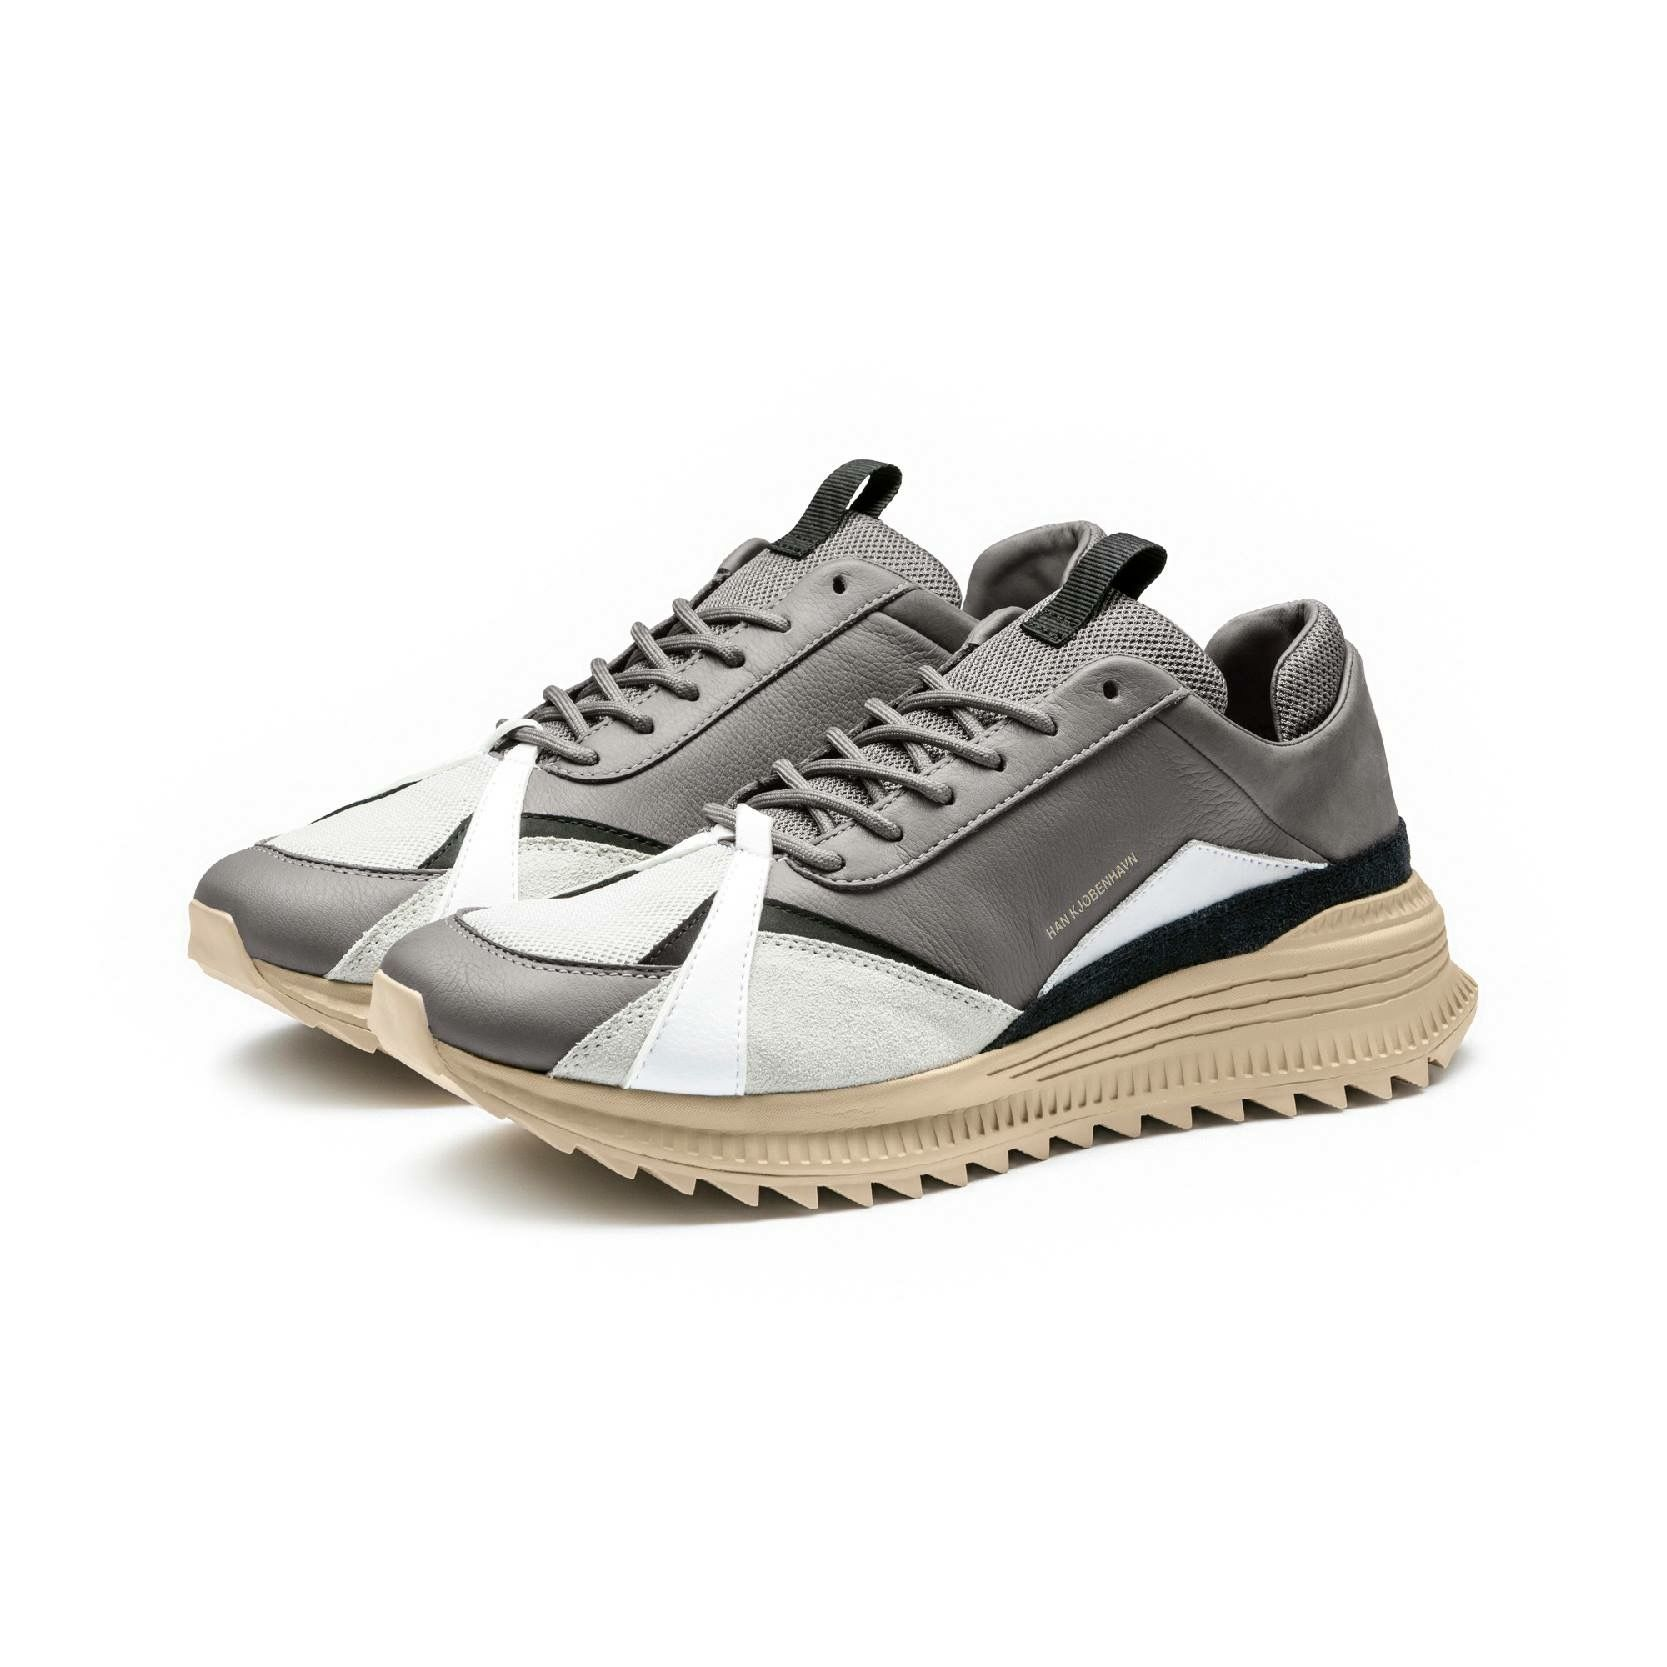 86212346e2b Han Kobenhavn x Puma | KICKS! | Sneakers, Shoes, Pumas shoes